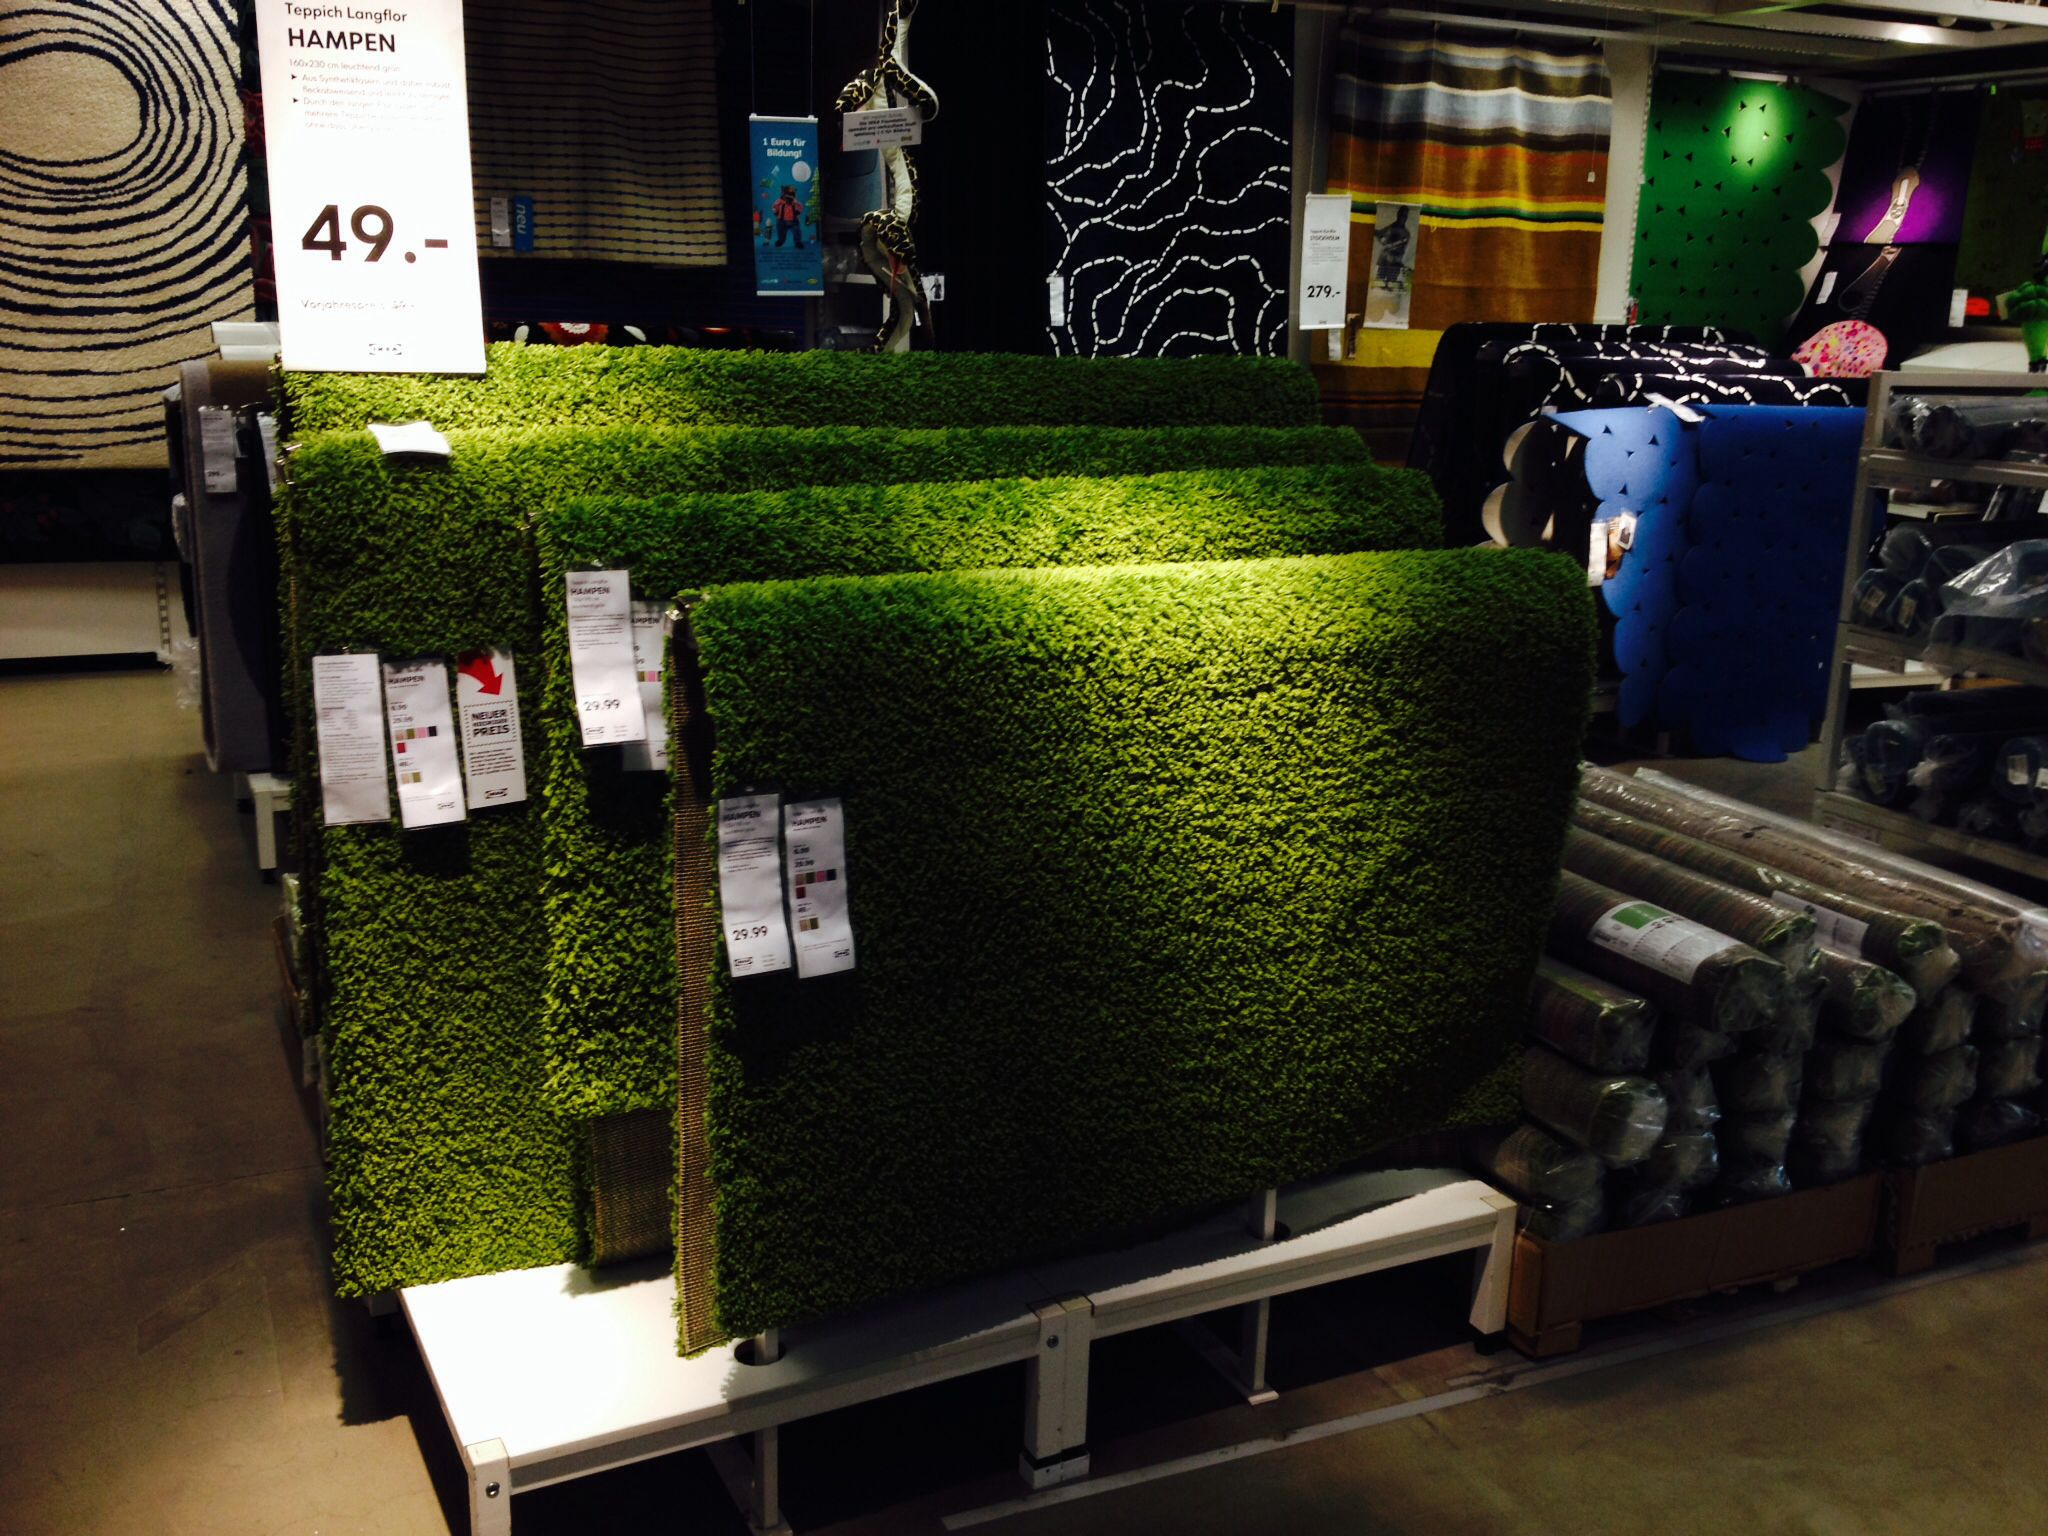 Grass carpet ikea indoor playground fun fittings for Ikea grass rug